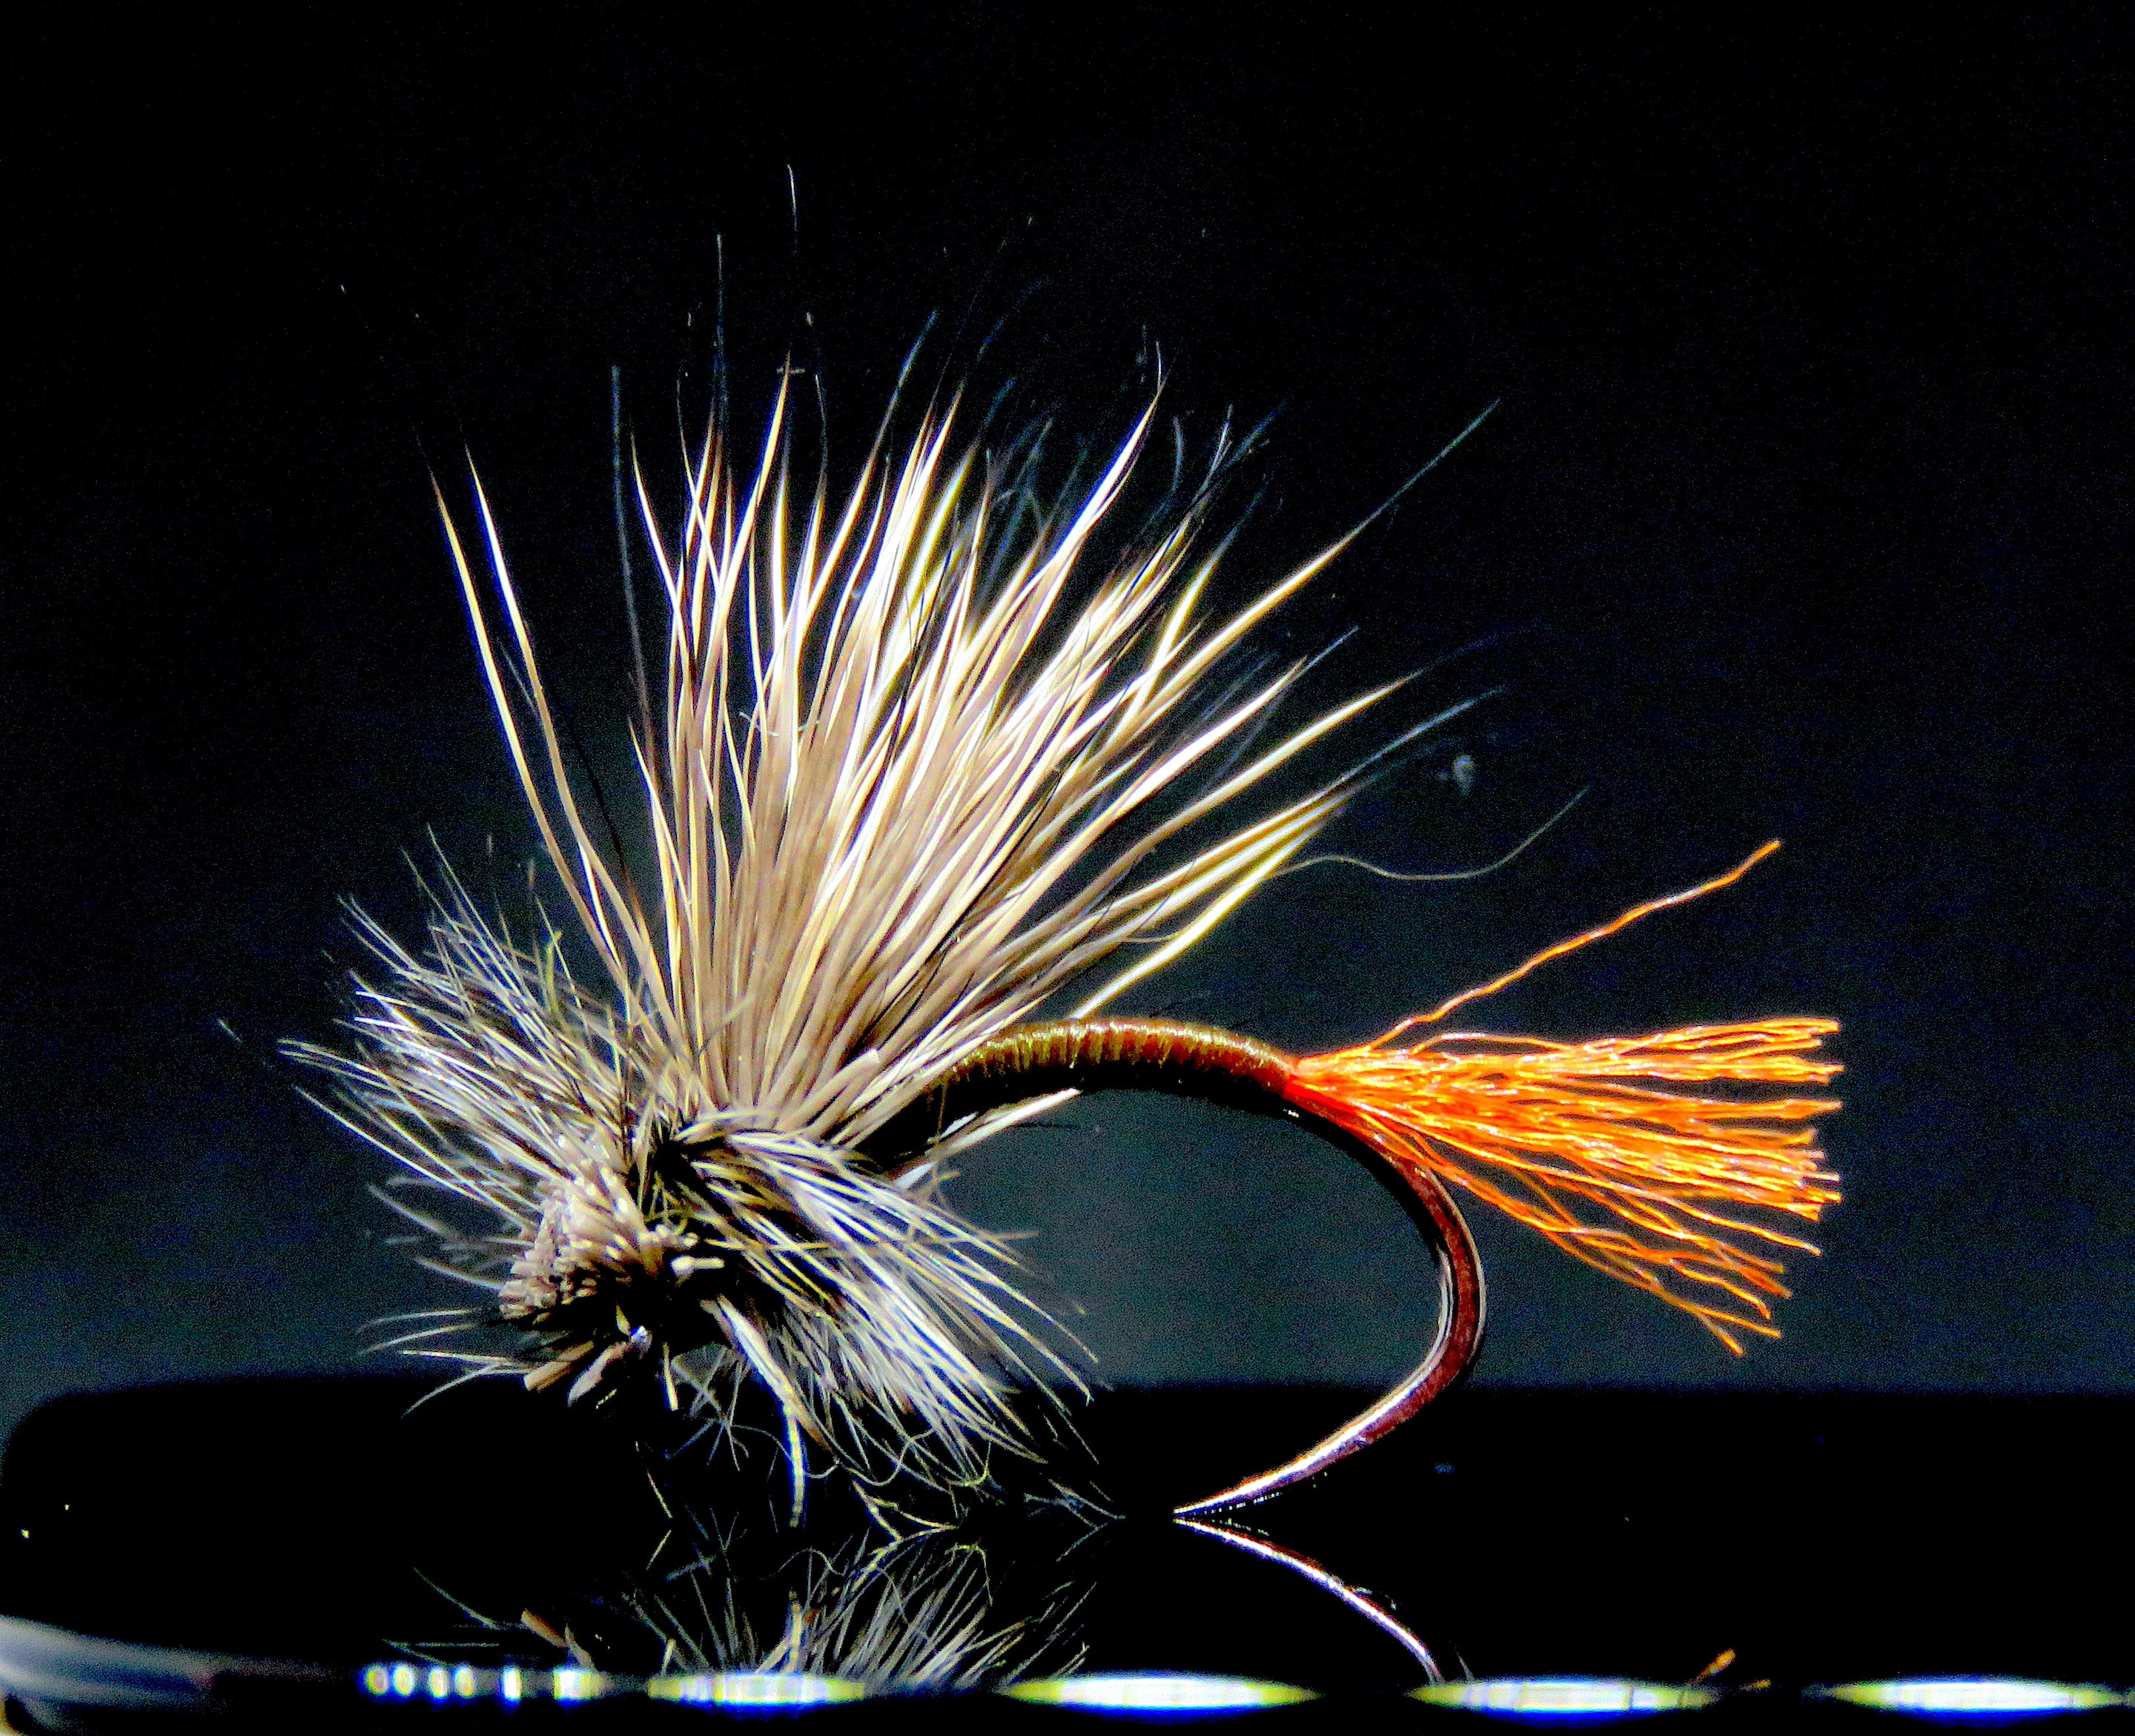 Emerging X-Caddis